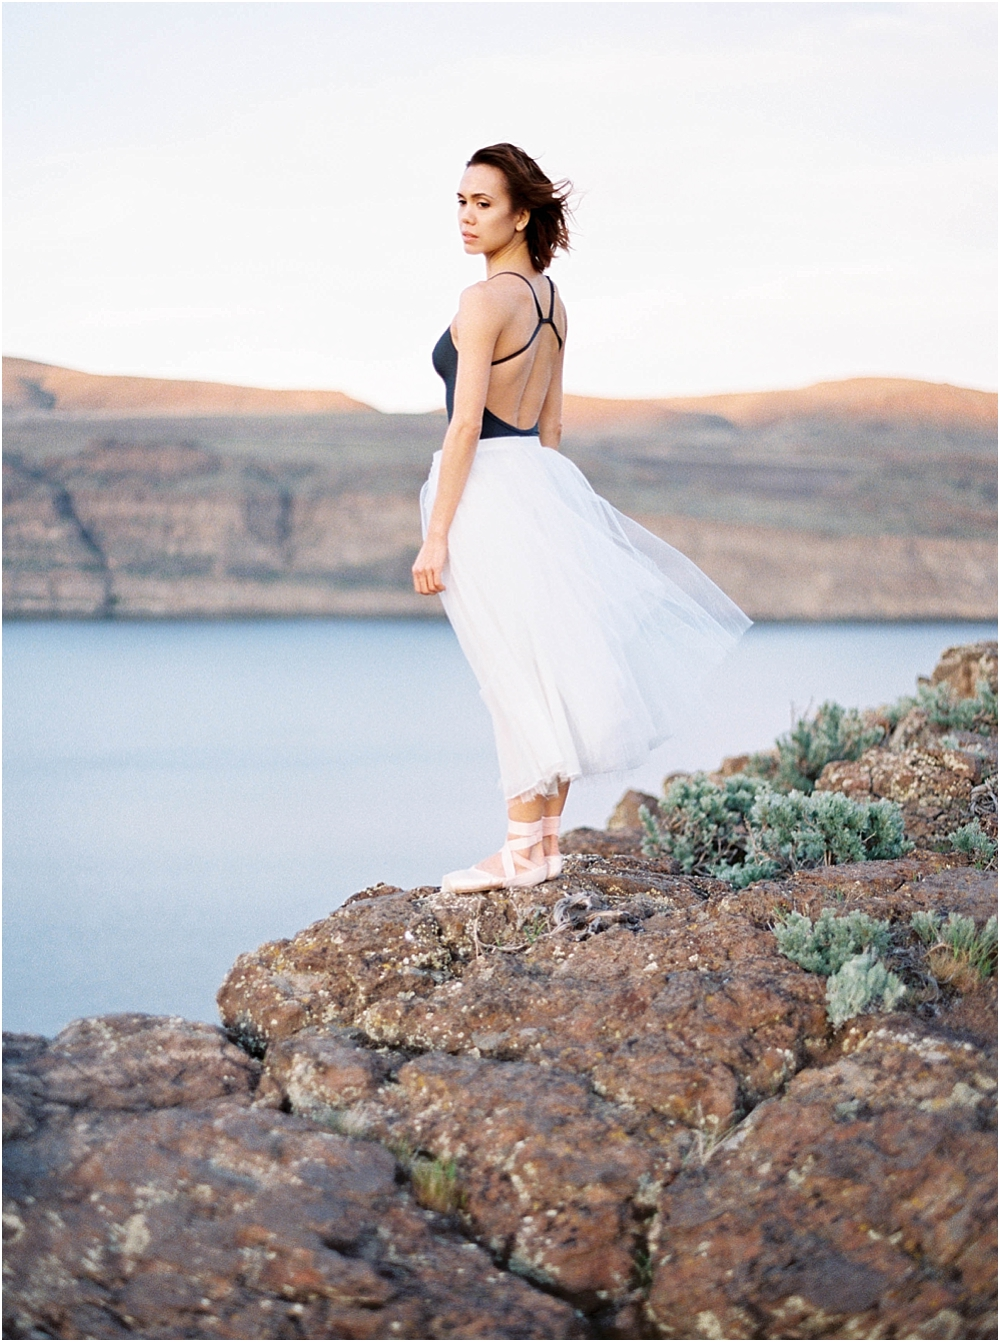 Fine Art Film Wedding Photography | Sarah Carpenter Wedding Photography | Seattle & Destinations Worldwide